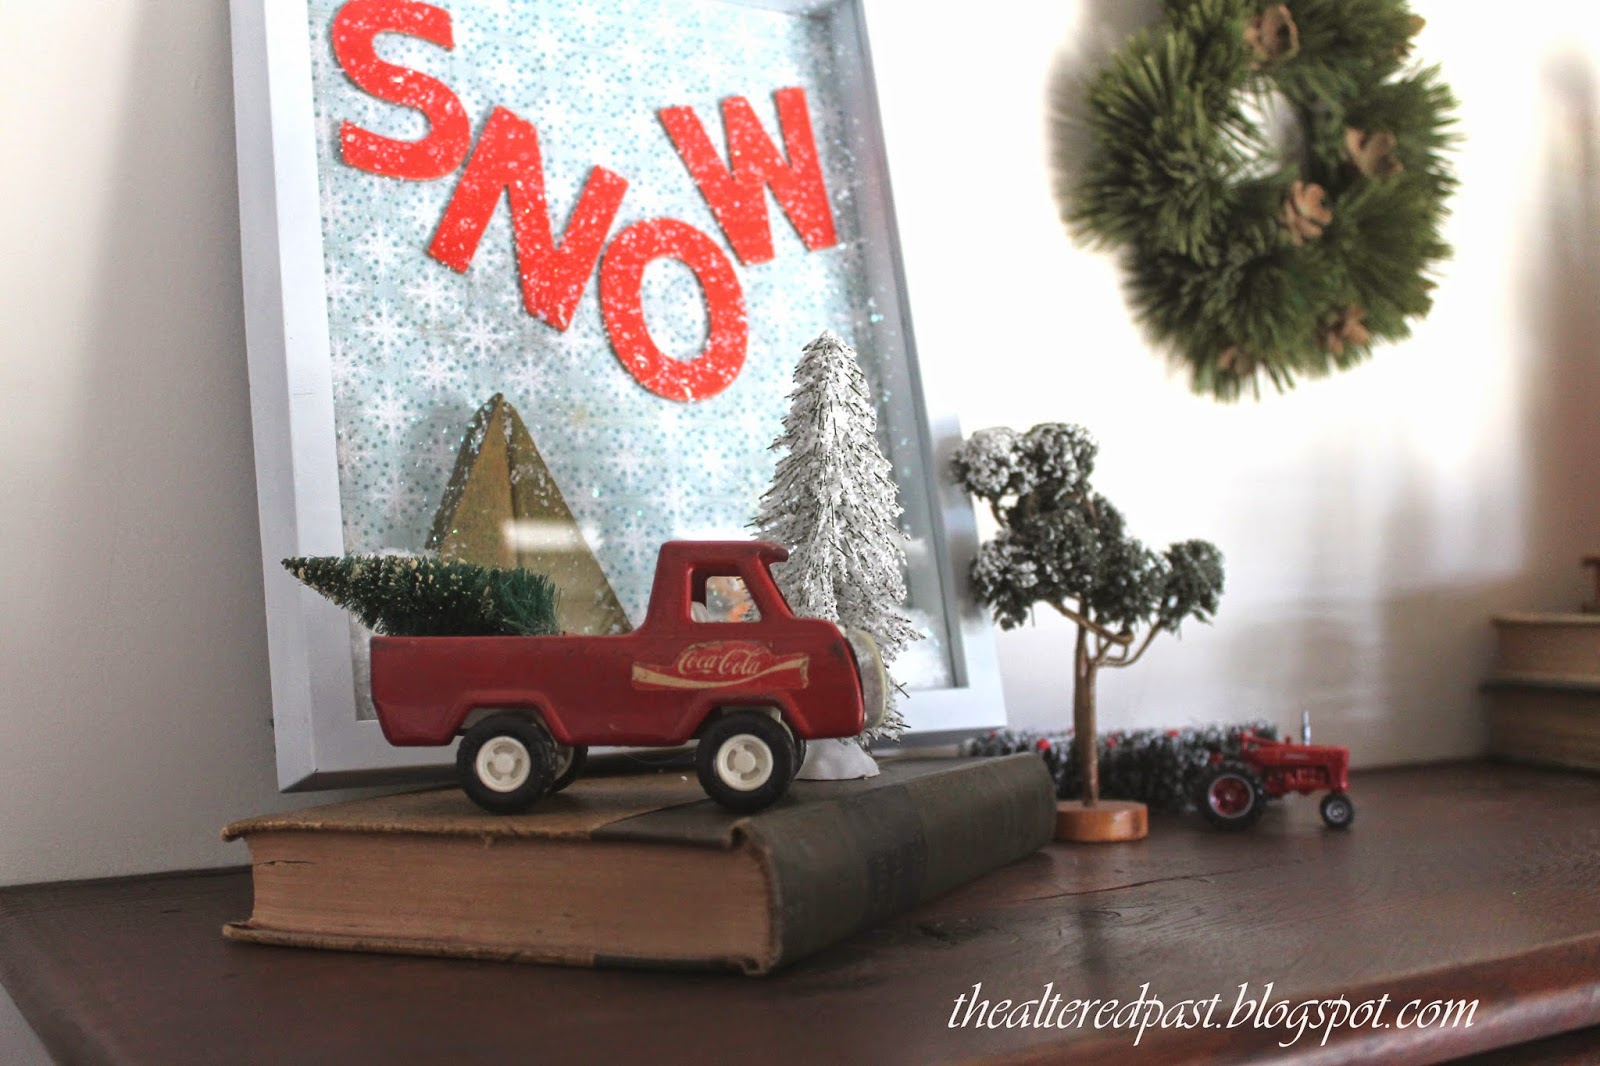 snow globe picture, vintage toy truck, christmas decor, the altered past